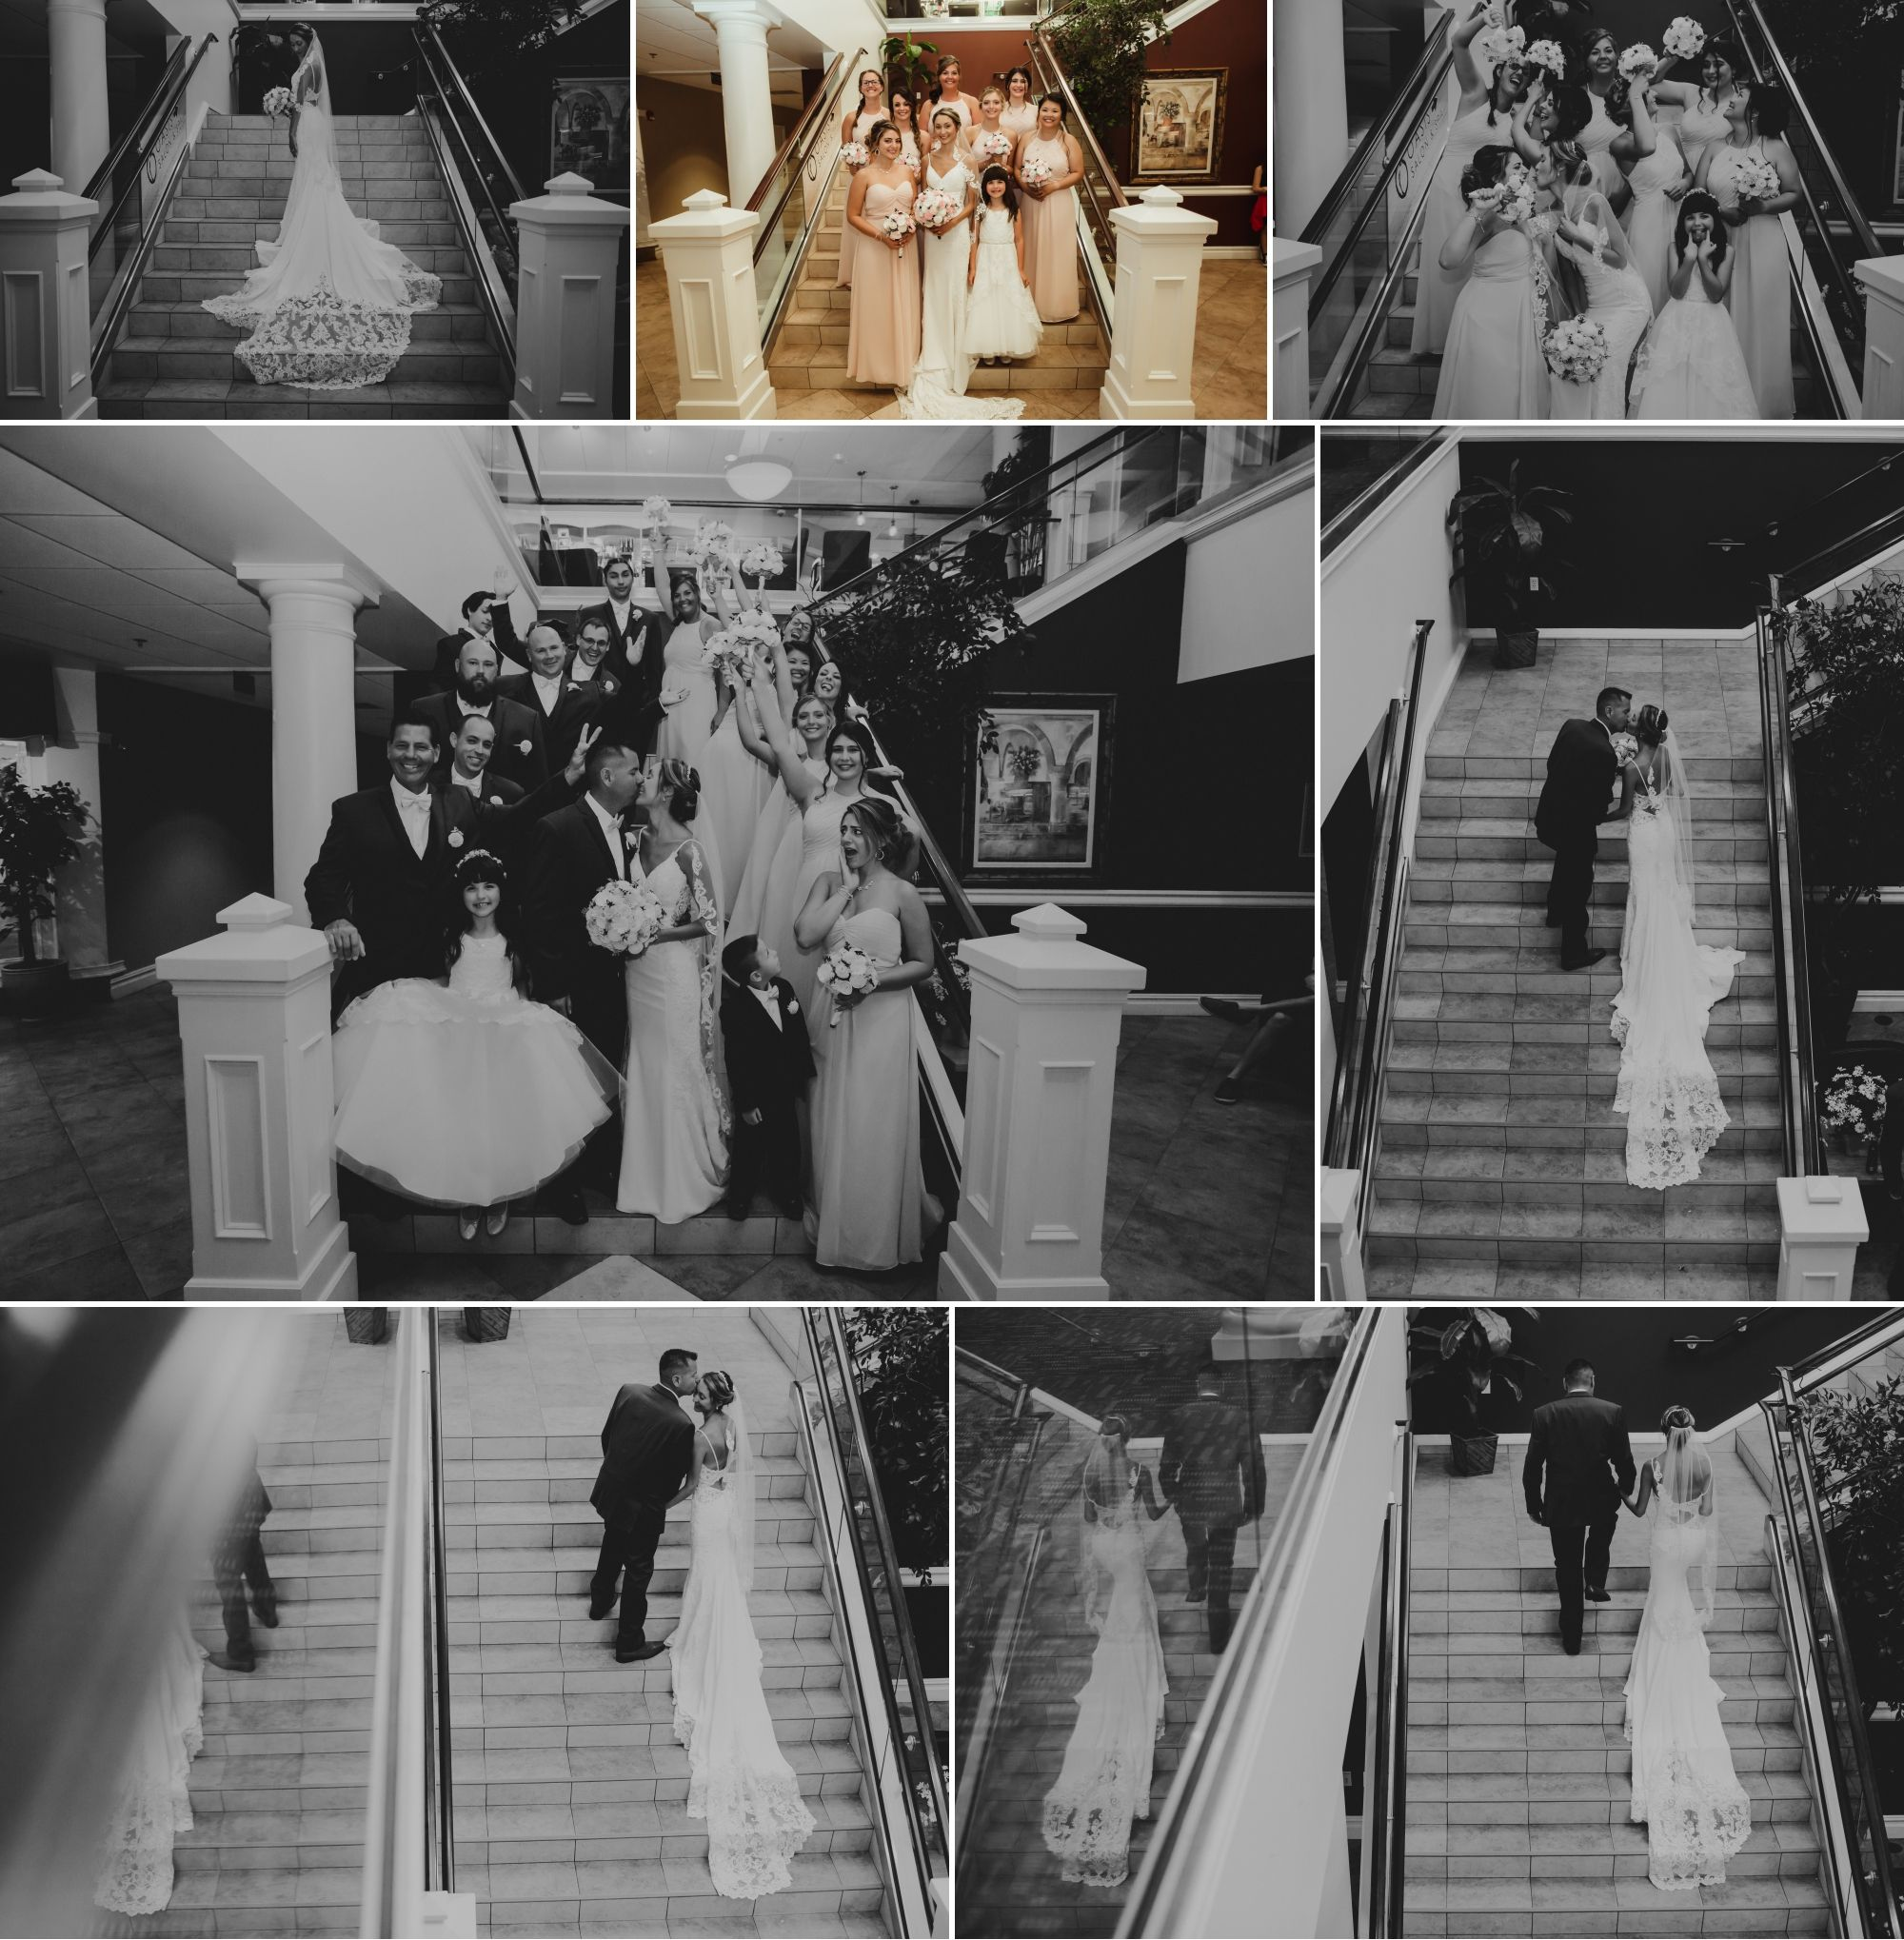 Photos of the wedding party on stairs inside of the hotel.